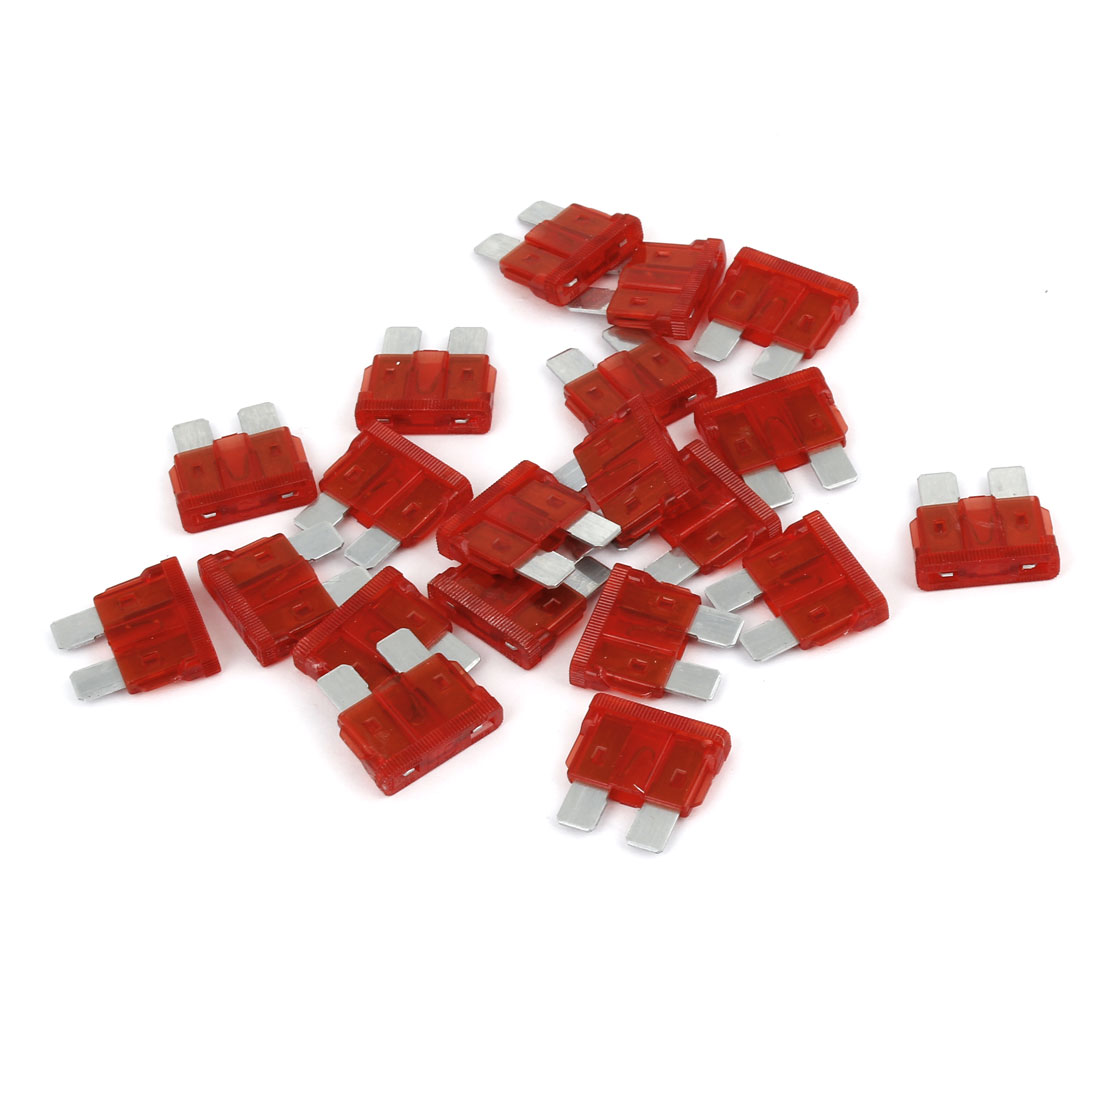 20 Pcs 32V 10A Auto Car Boat Motorcycle Large Size Blade ATC Fuse Red